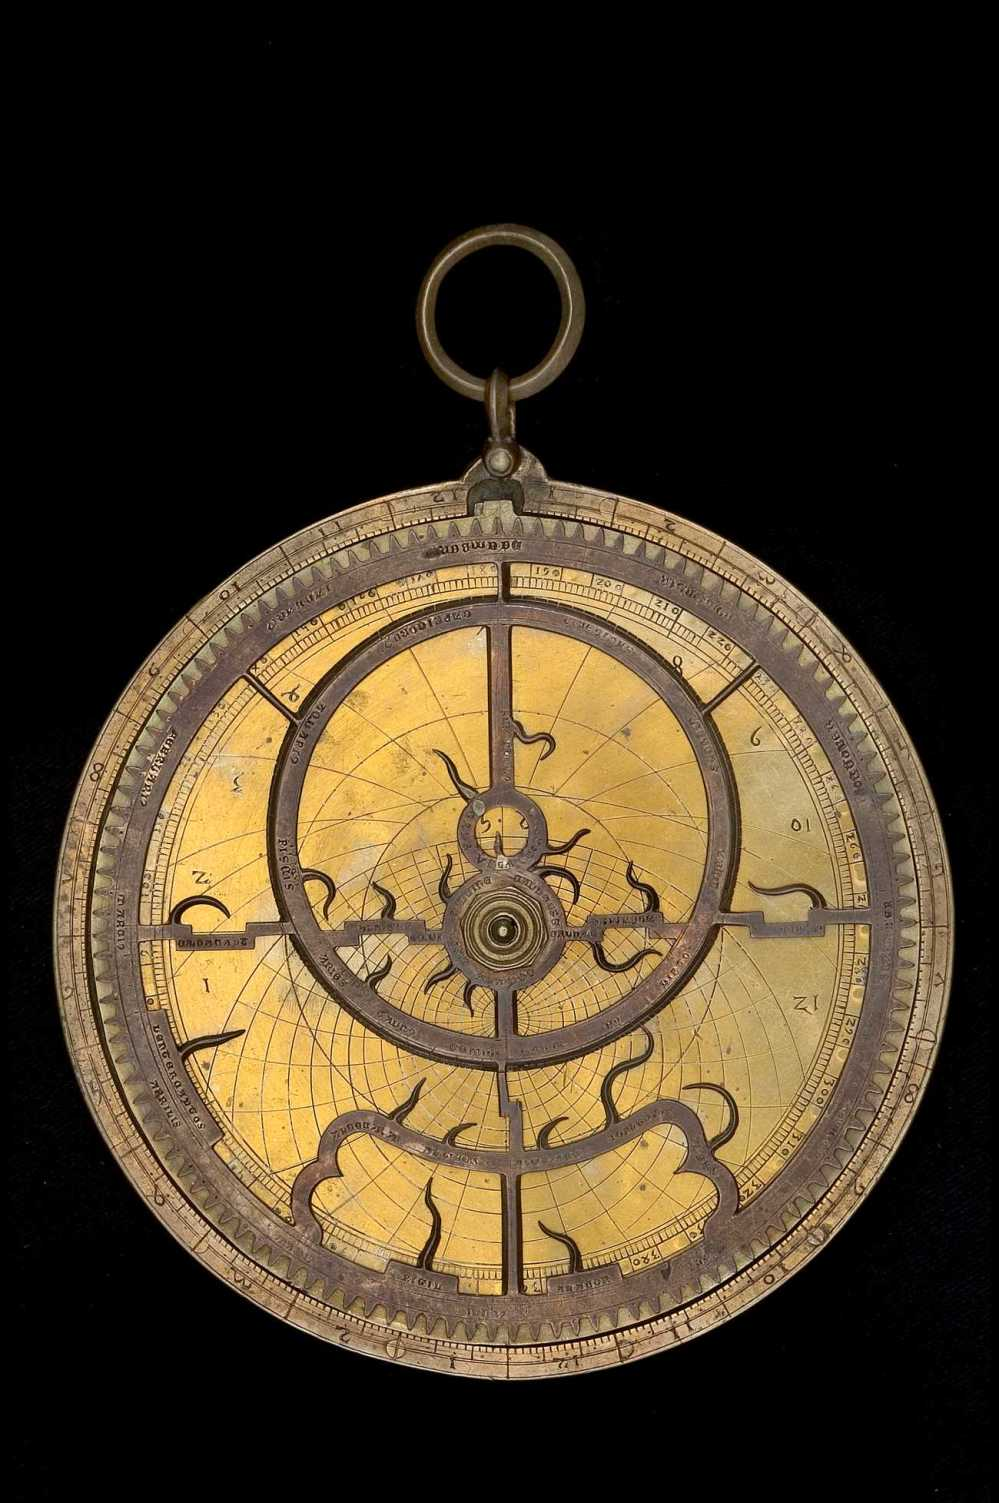 preview image for Gothic Astrolabe with Universal Projection and Toothed Rete, c. 1400